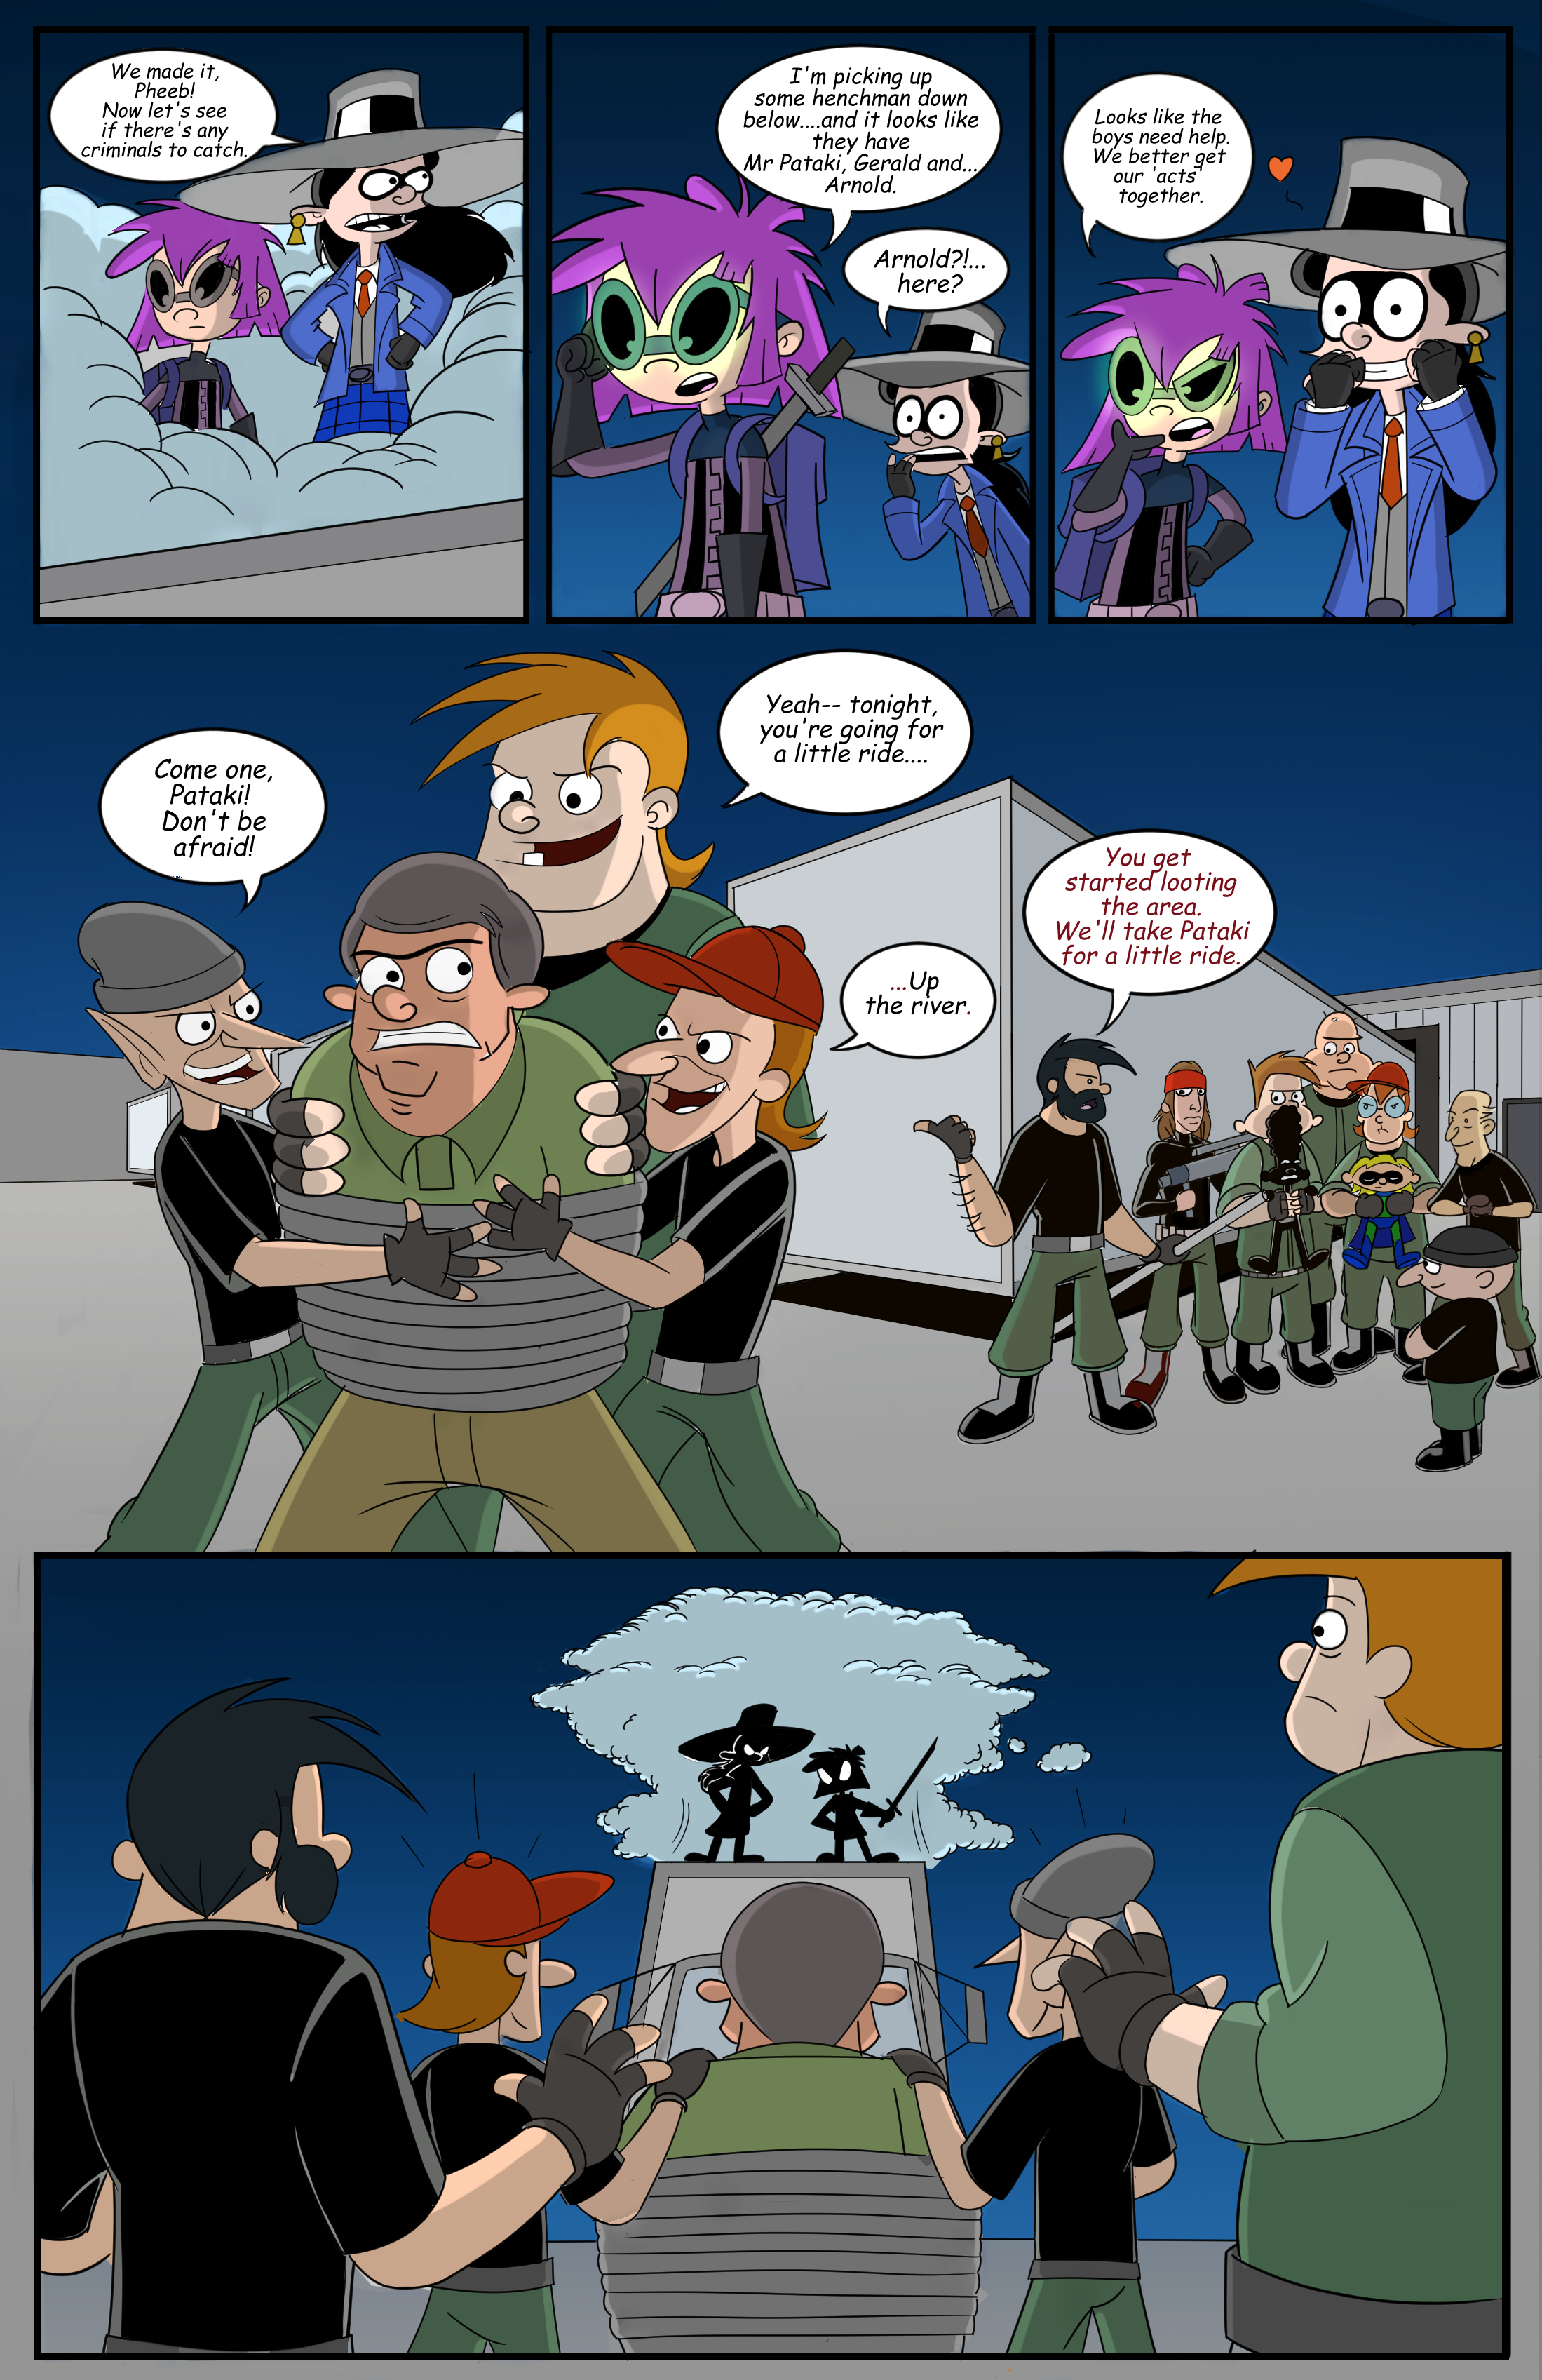 Hey Arnold! superhero page 11